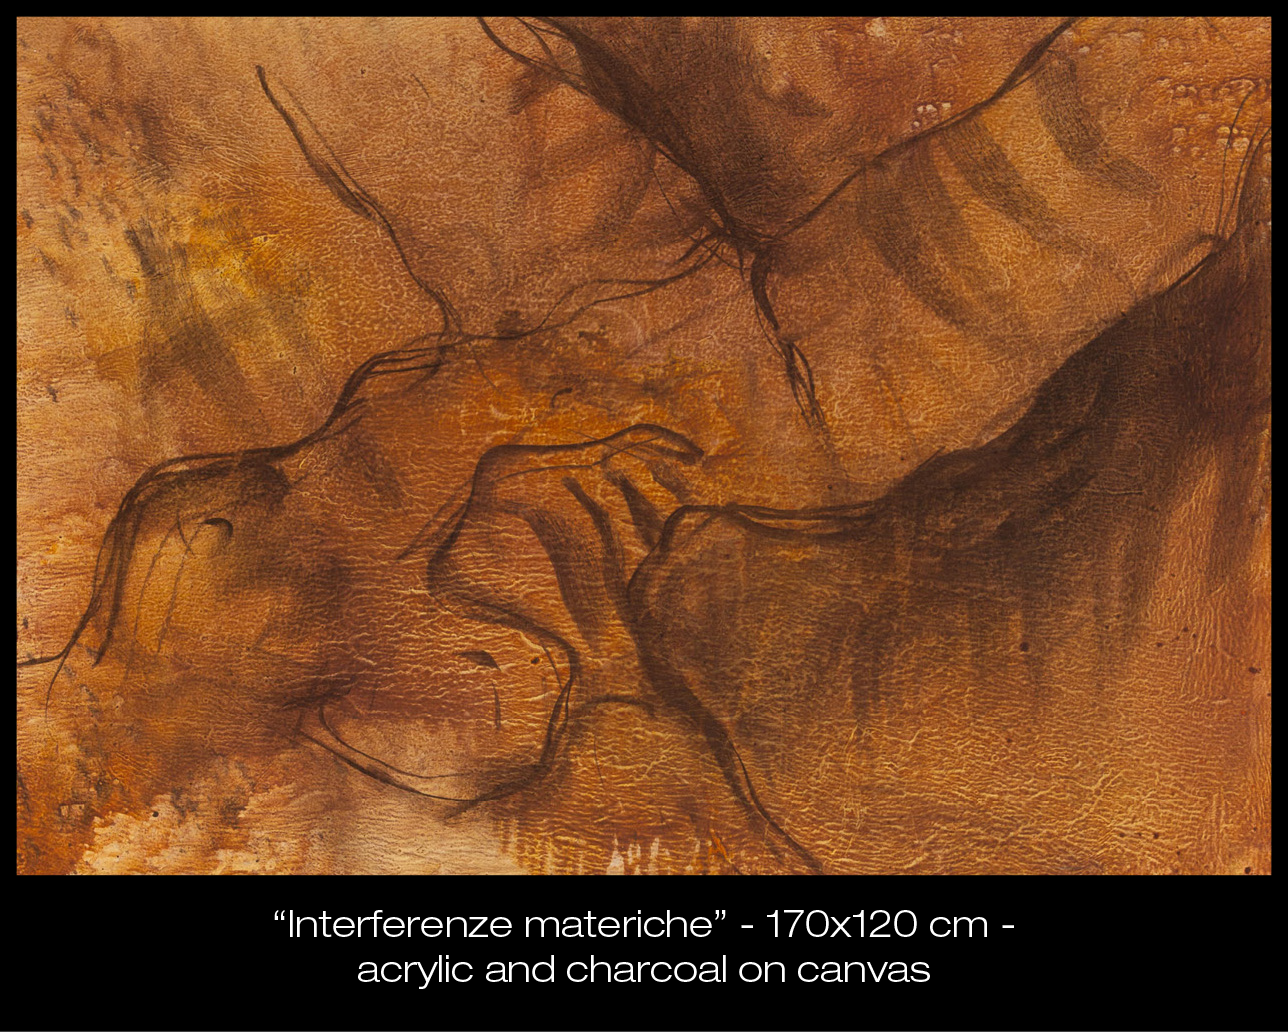 34-Interferenze materiche